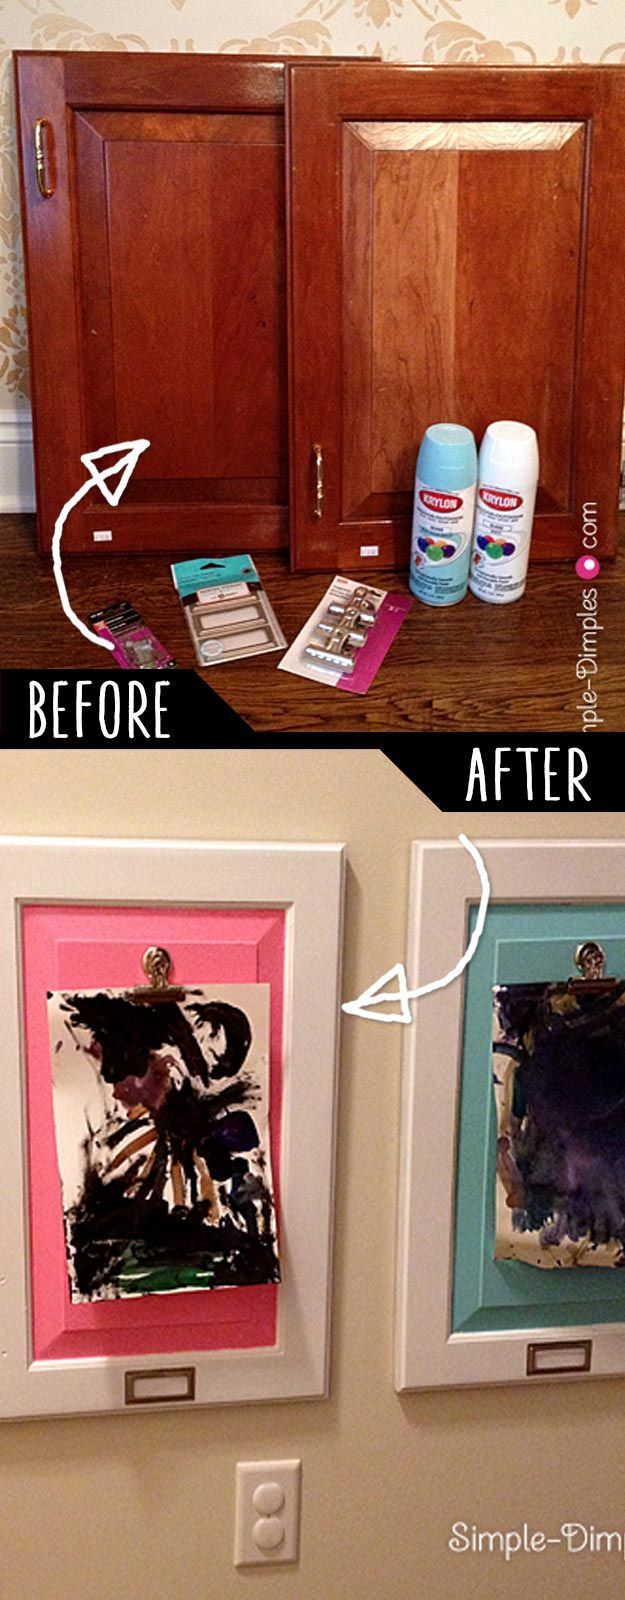 DIY Furniture Hacks    Artwork Display for Children using Cabinet Doors    Cool Ideas for Creative Do It Yourself Furniture Made From Things You Might Not Expect - http://diyjoy.com/diy-furniture-hacks